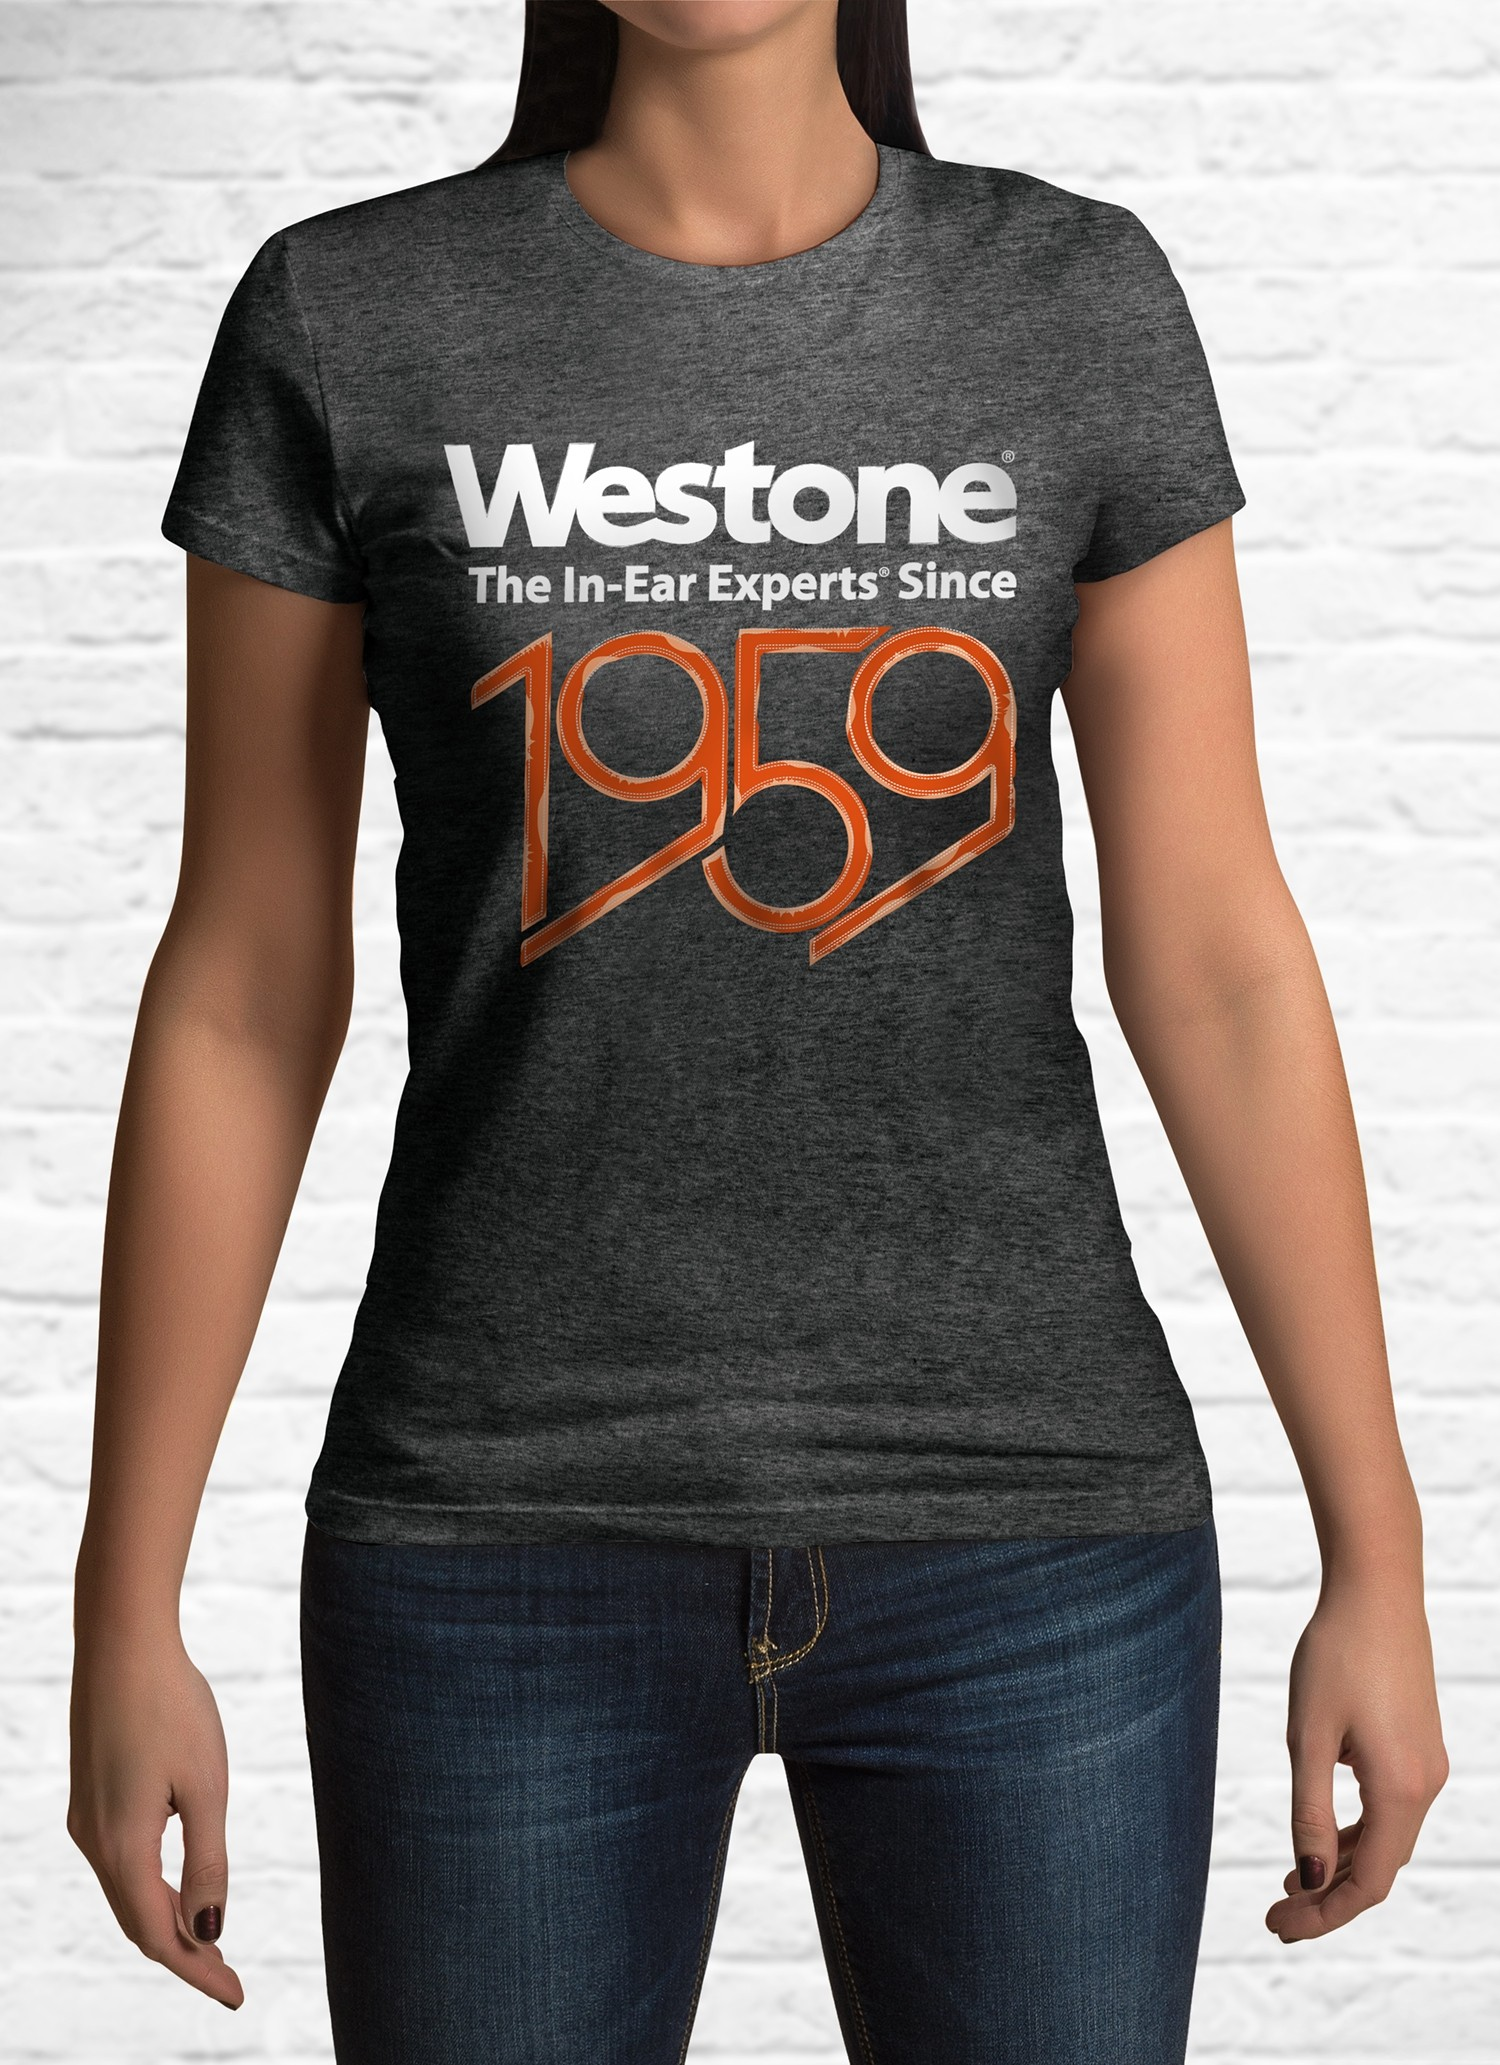 Westone Since 1959 T-Shirt Front